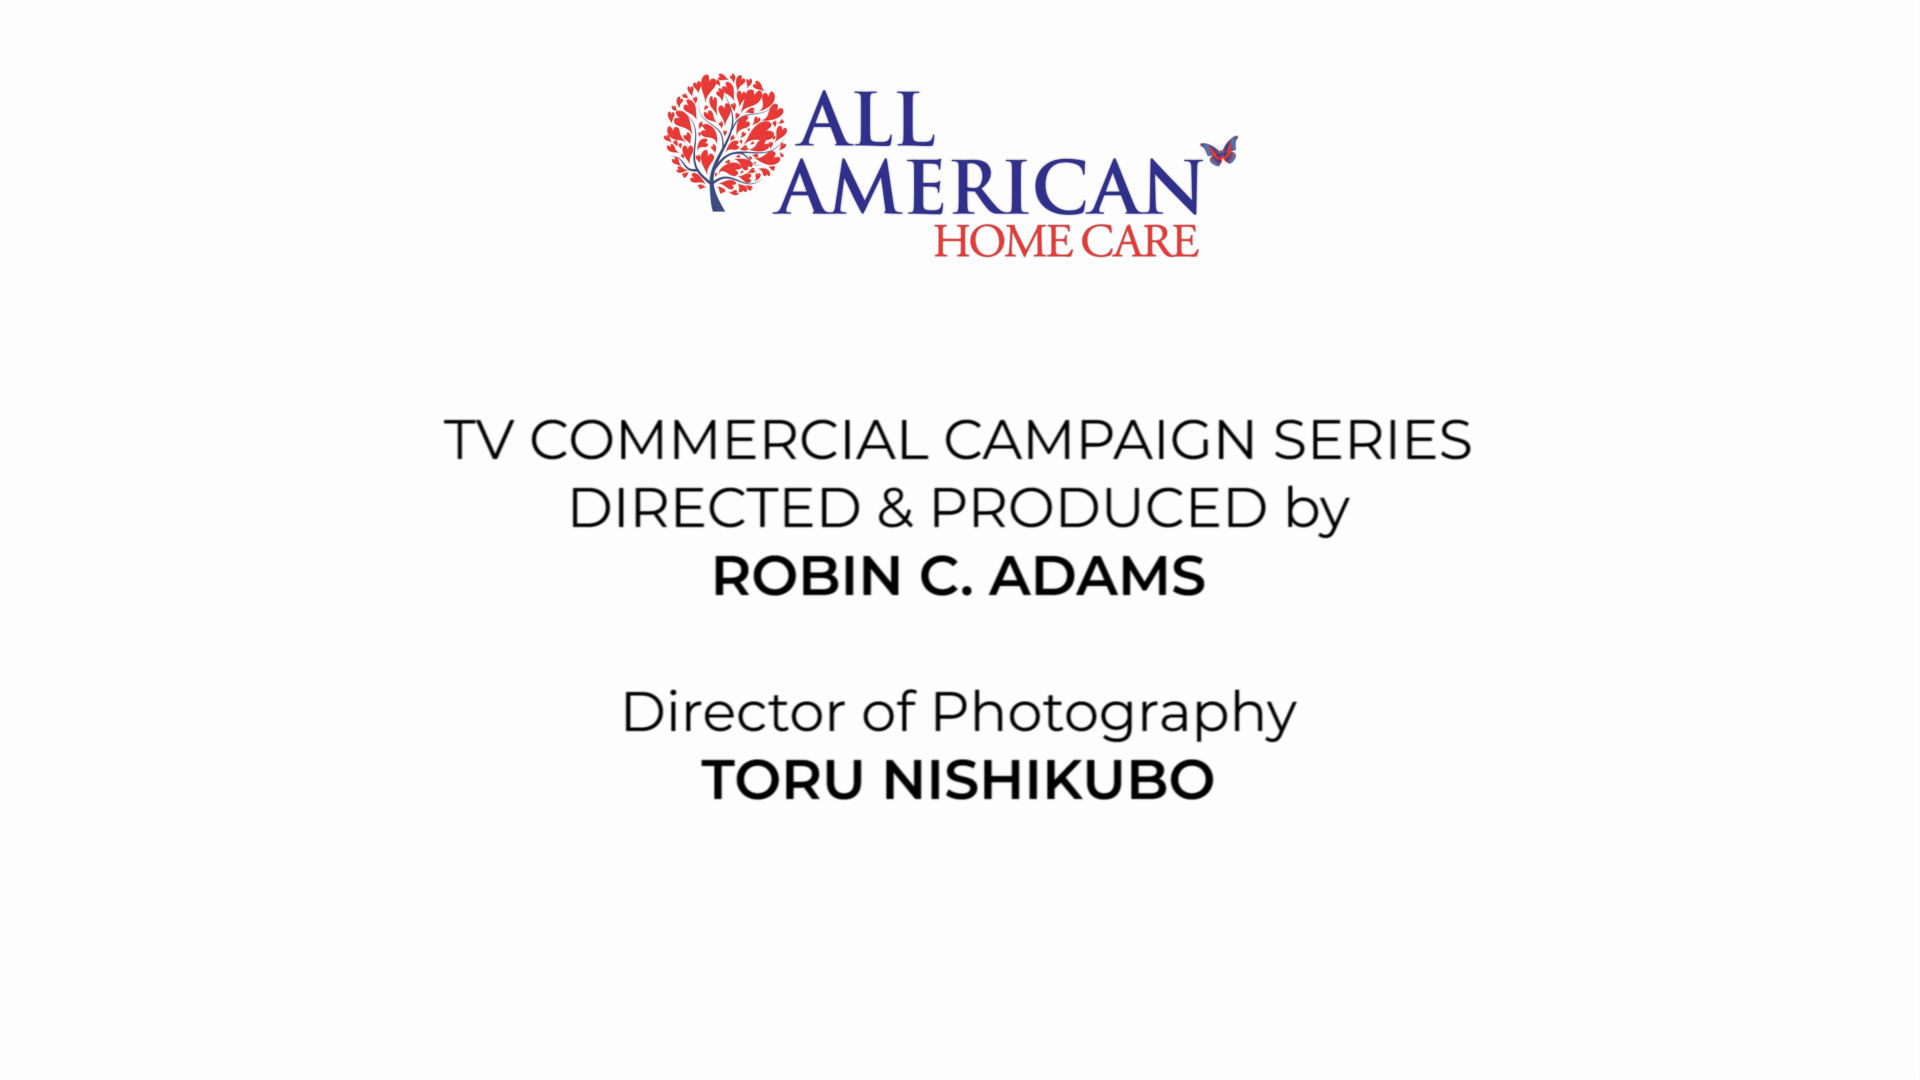 All American Home Care TV Campaign Series